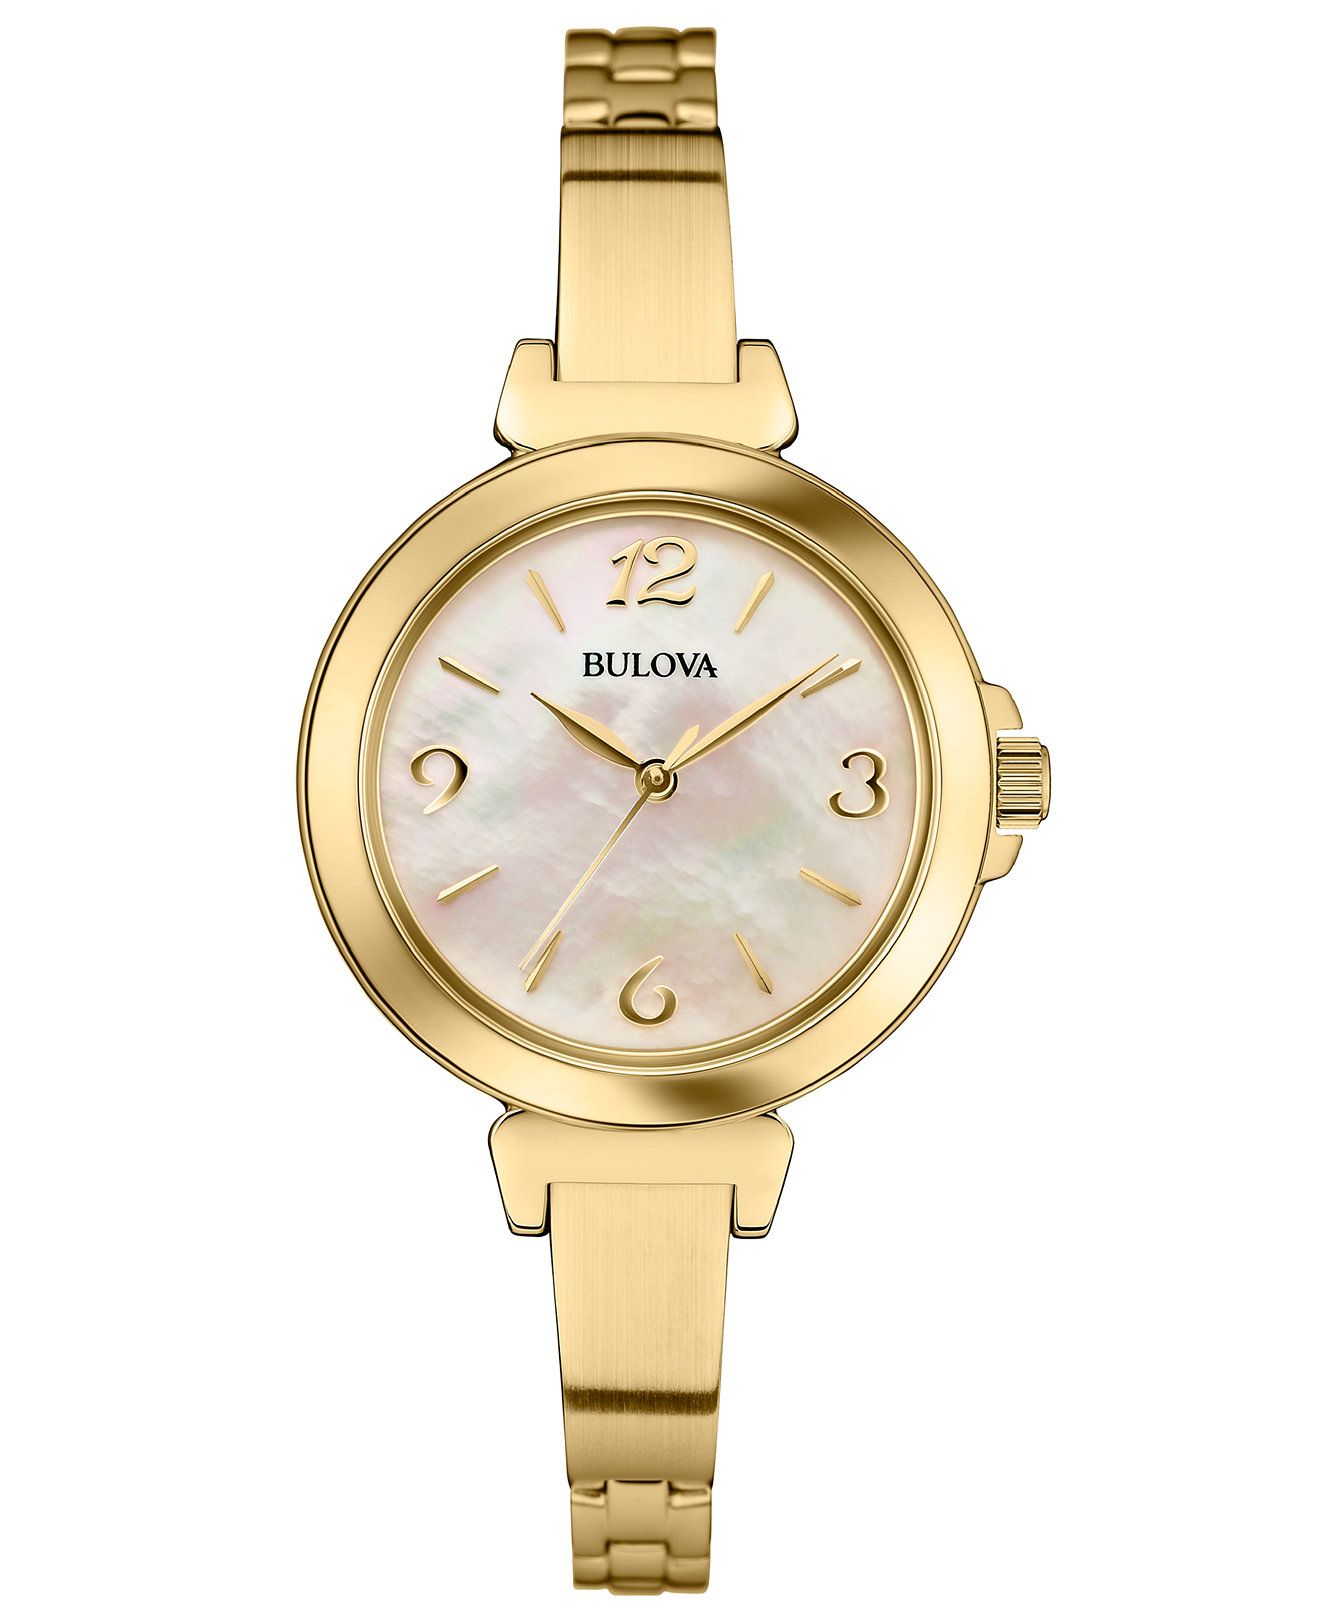 3cb1c6e3521 Bulova Women s Gold-Tone Stainless Steel Bangle Bracelet Watch 30mm 97L136  - Women s Watches - Jewelry   Watches - Macy s